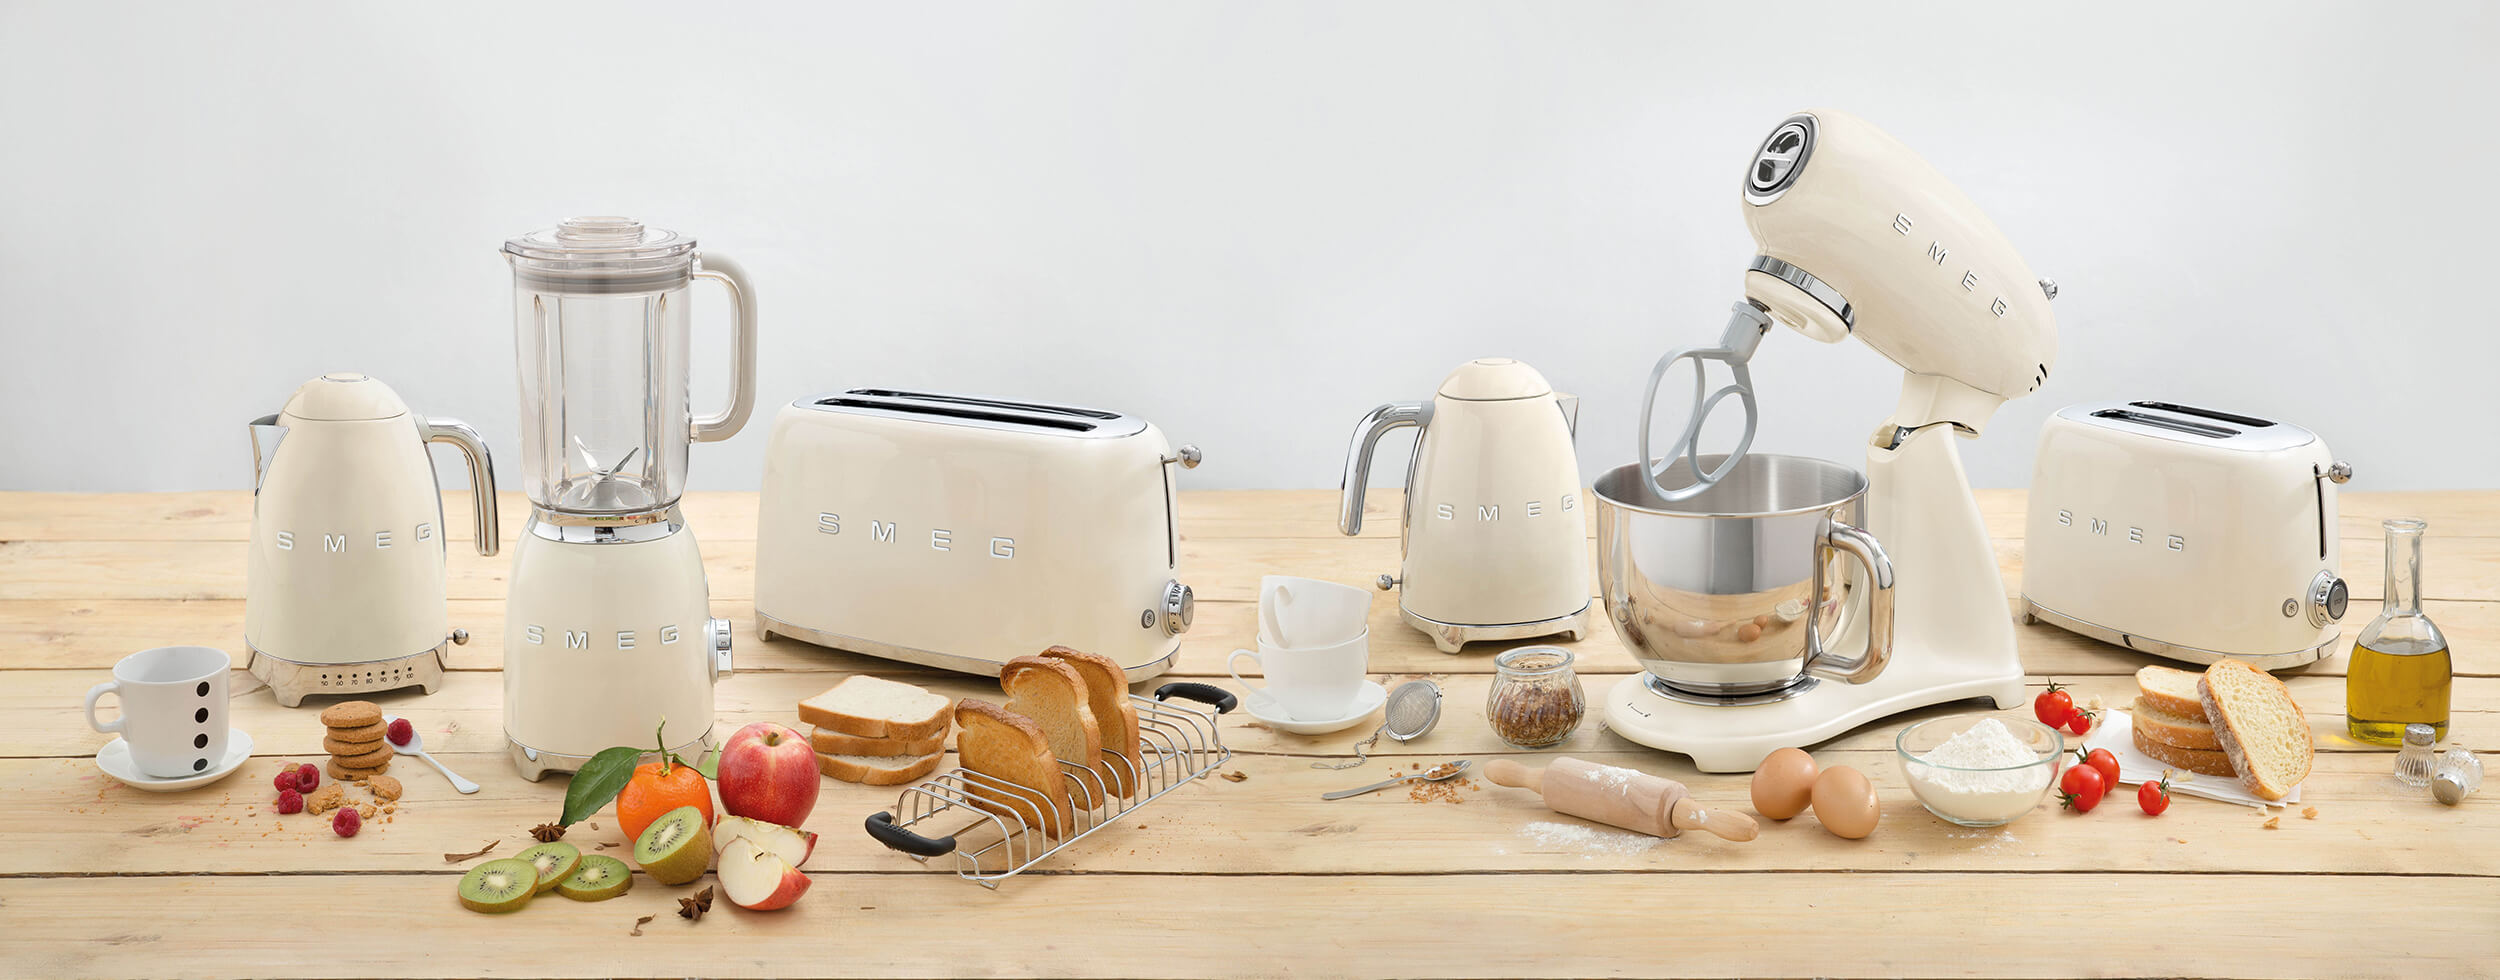 Smeg small domestic appliances